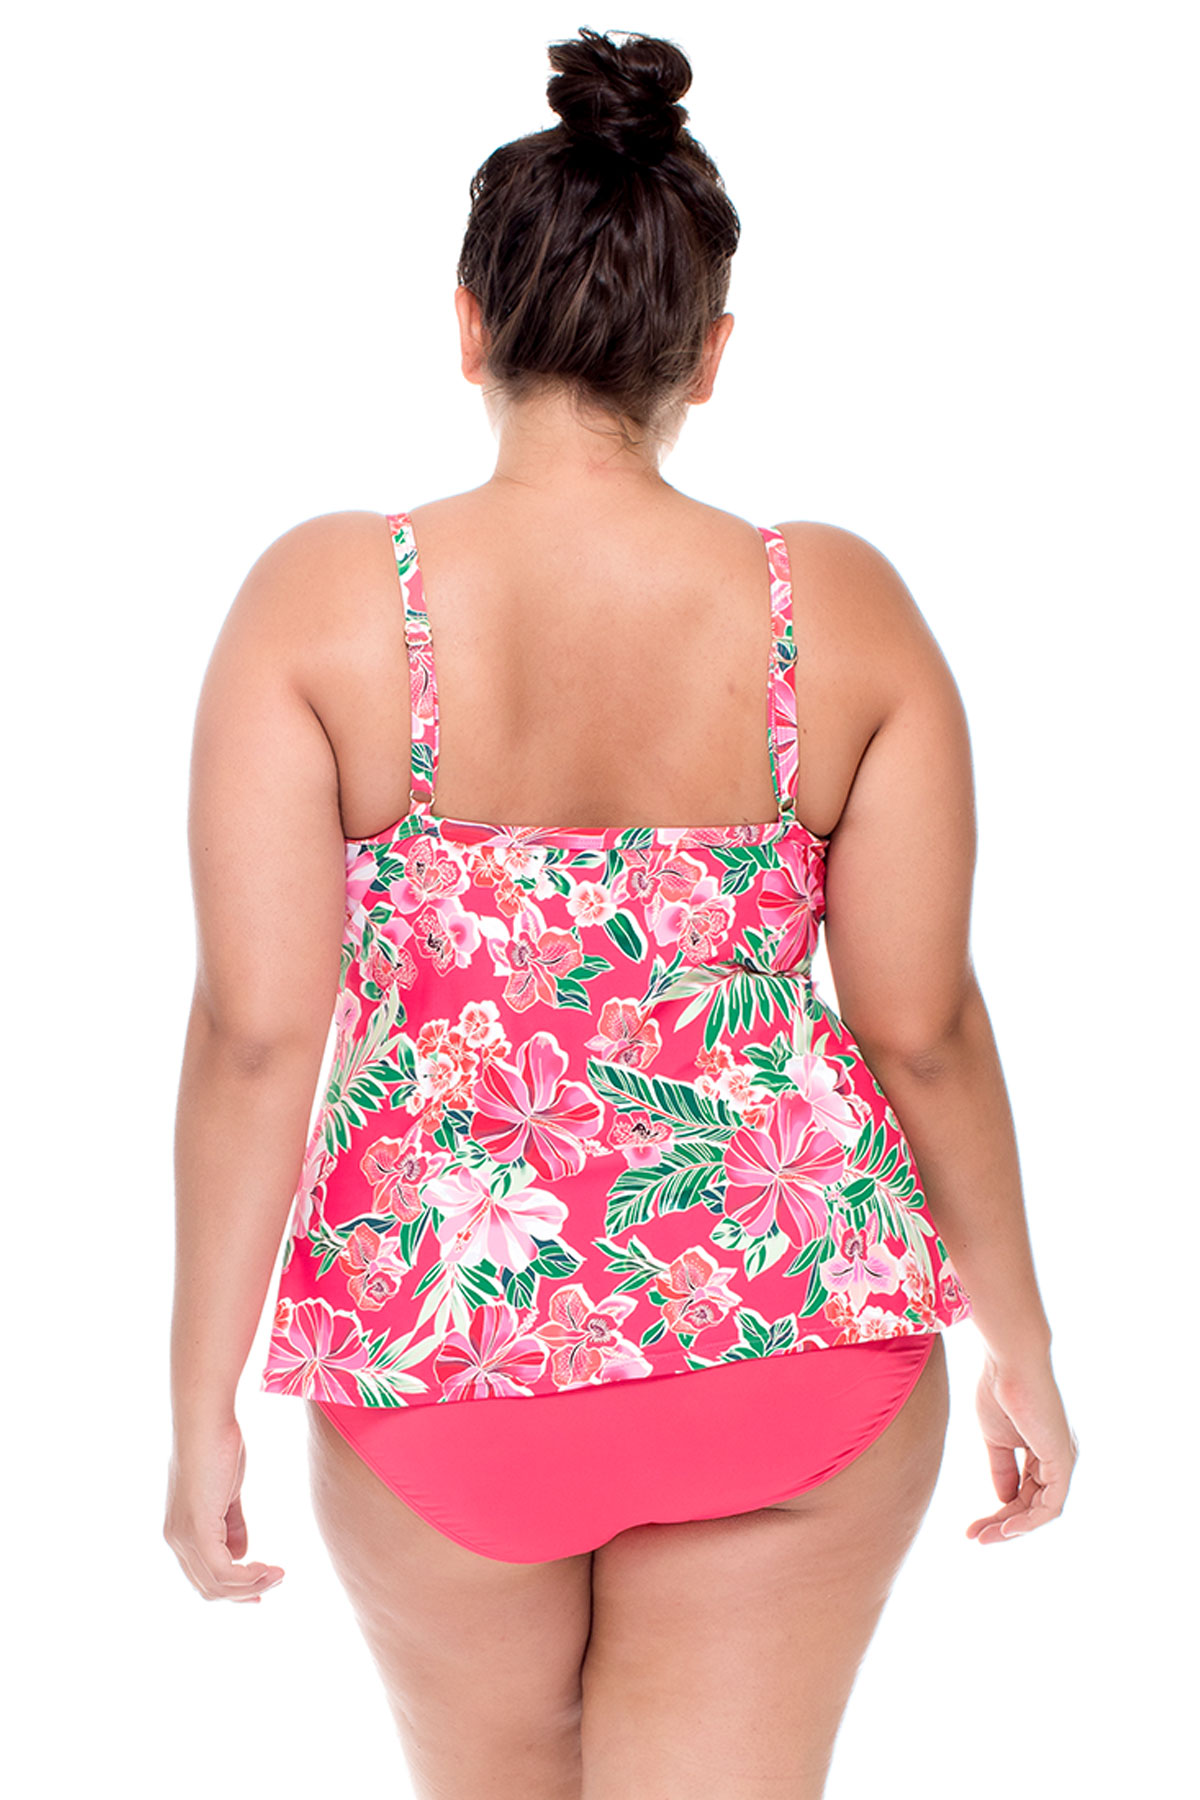 Twist-Front Underwire Over The Shoulder Tankini Top (C-D Cup) - Honolulu 2